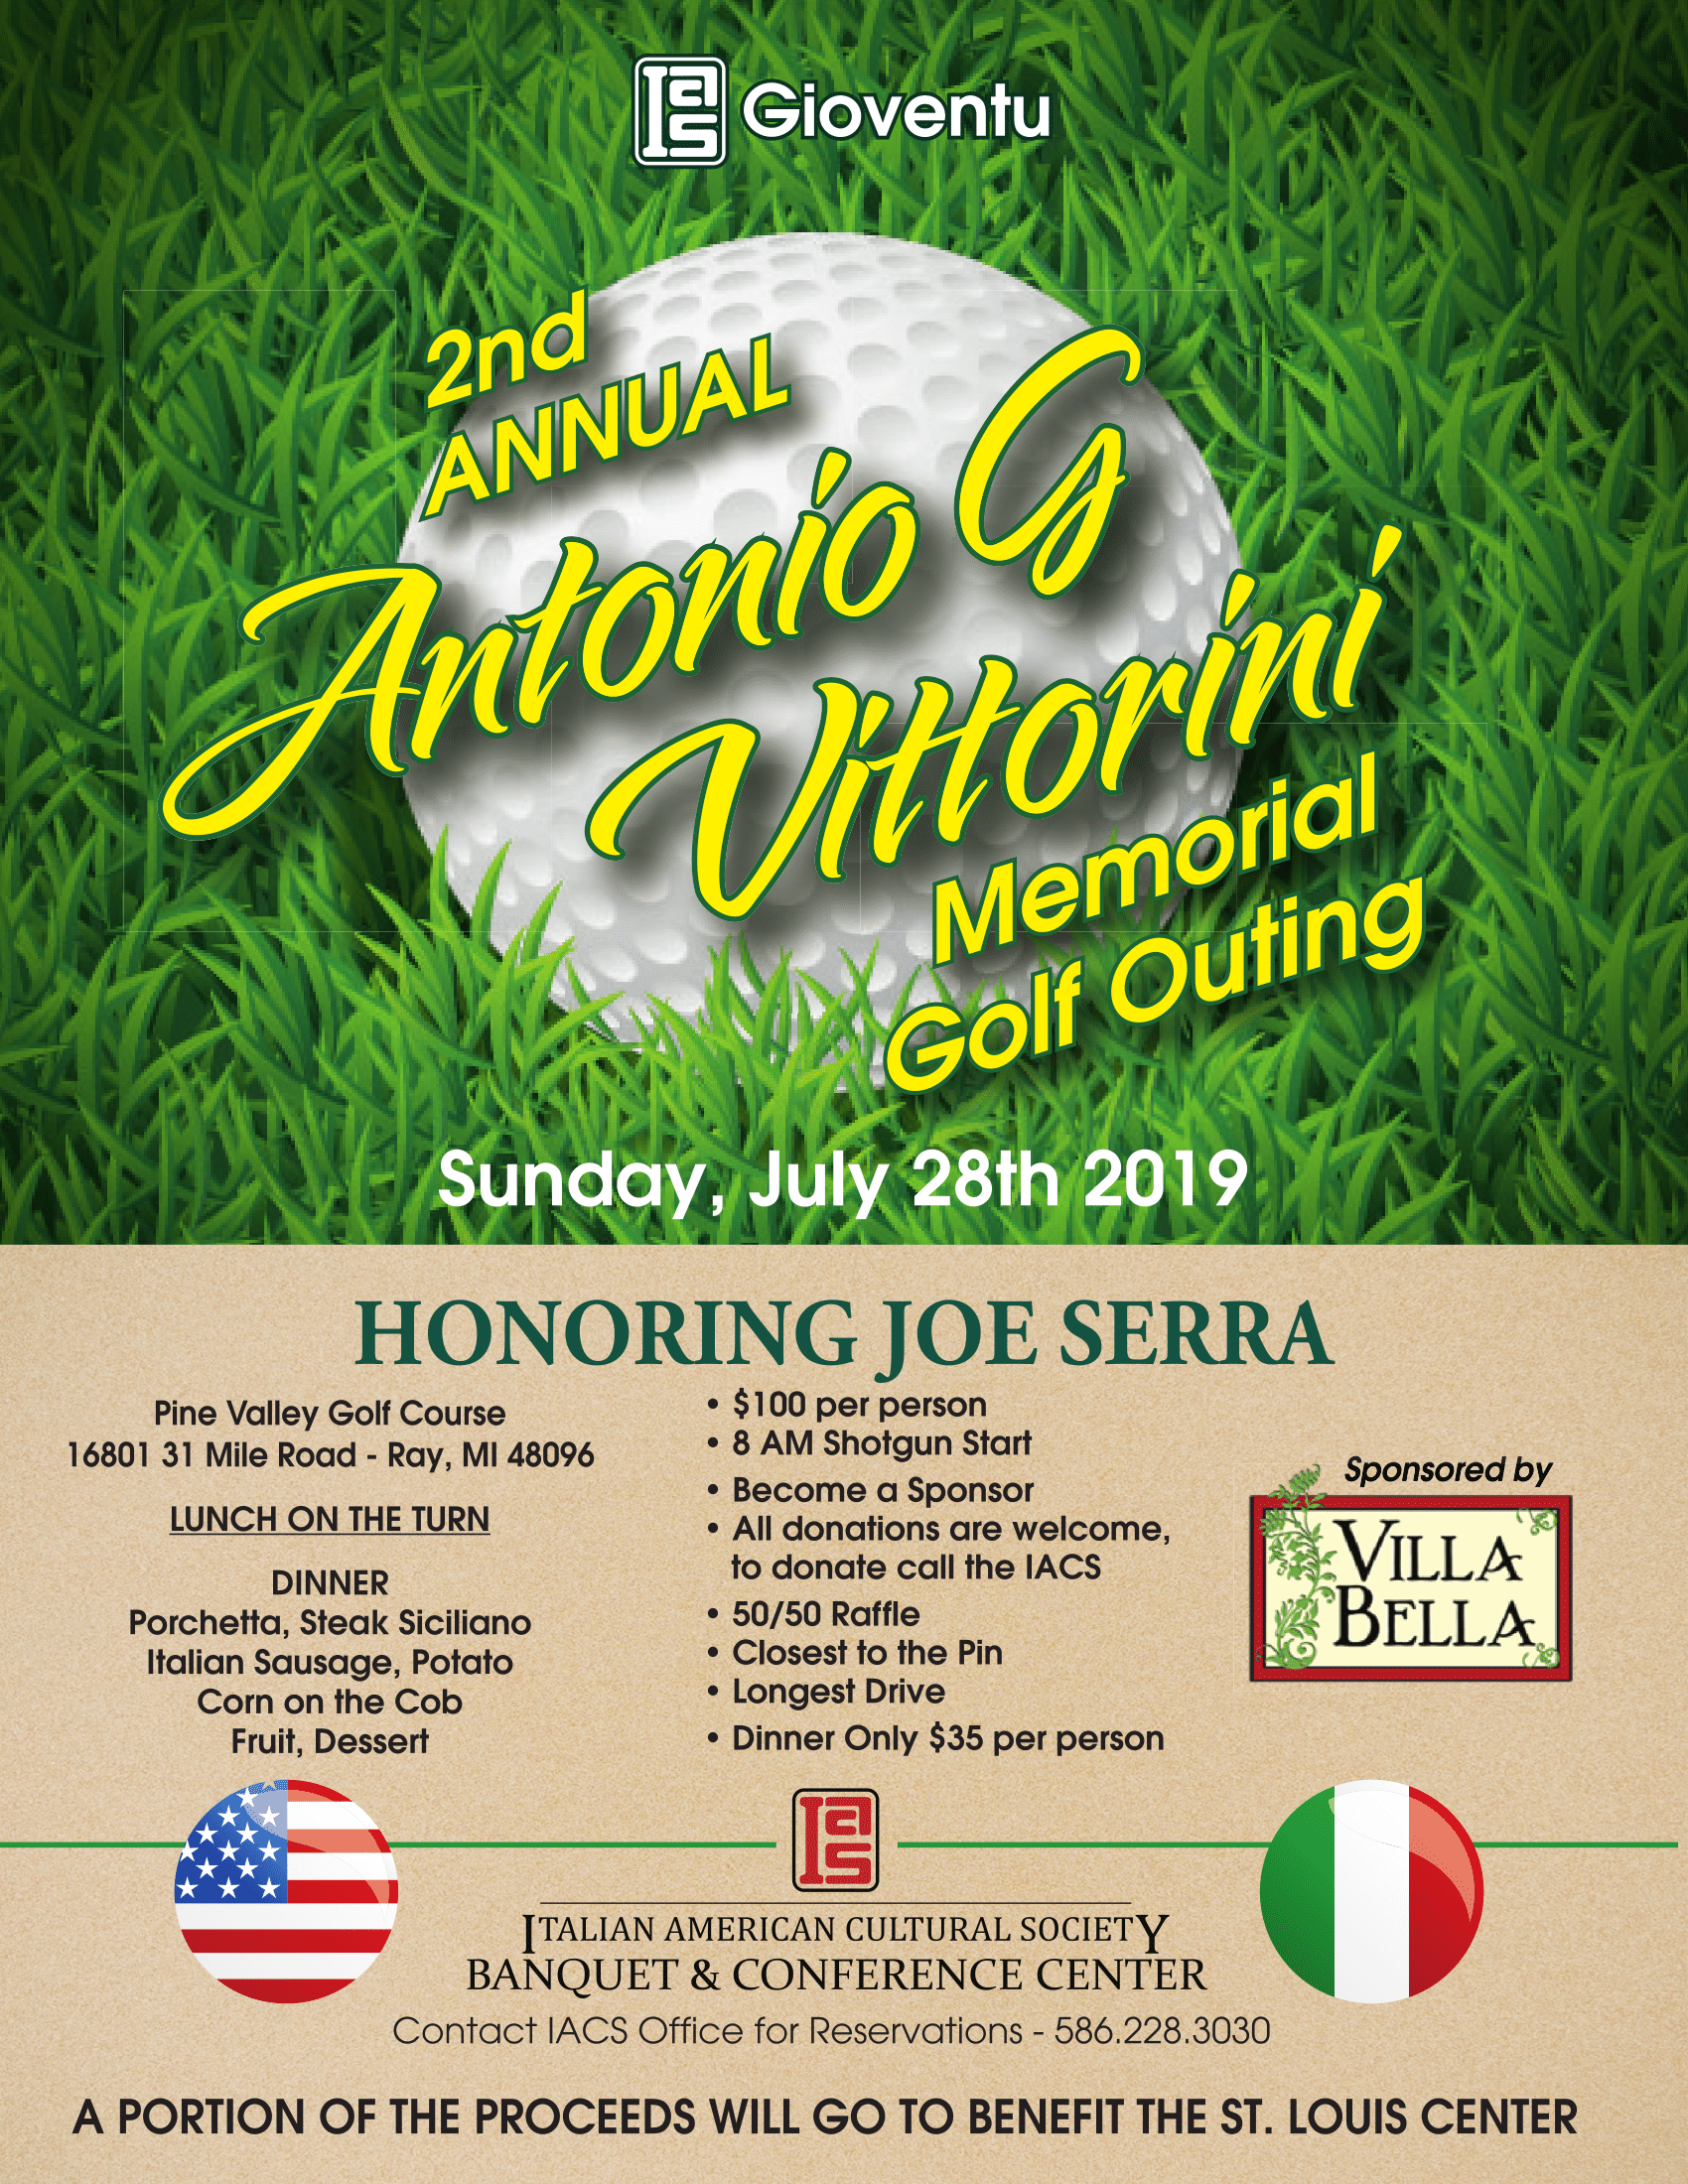 Gioventu 2nd Annual Antonio G Vittorini Memorial Golf Outing - Sunday, July 28th 2019 - Honoring Joe Serra Sponsored by Villa Bella - Pine Valley Golf Course 16801 31 Mile Road - Ray, MI 48096 Lunch on the Turn Dinner Porchetta, Steak Siciliano Italian Sausage, Potato, Corn on the Cob Fruit, Dessert. $100 per person, 8 AM Shotgun Start, Become a Sponsor, All donations are welcome, to donate call the IACS, 50/50 RAffle, Closest to the Pin, Longest Drive, Dinner Only $35 per person. Italian American Cultural Society Banquet & Conference Center Contact IACS Office for Reservations- 586-228-3030